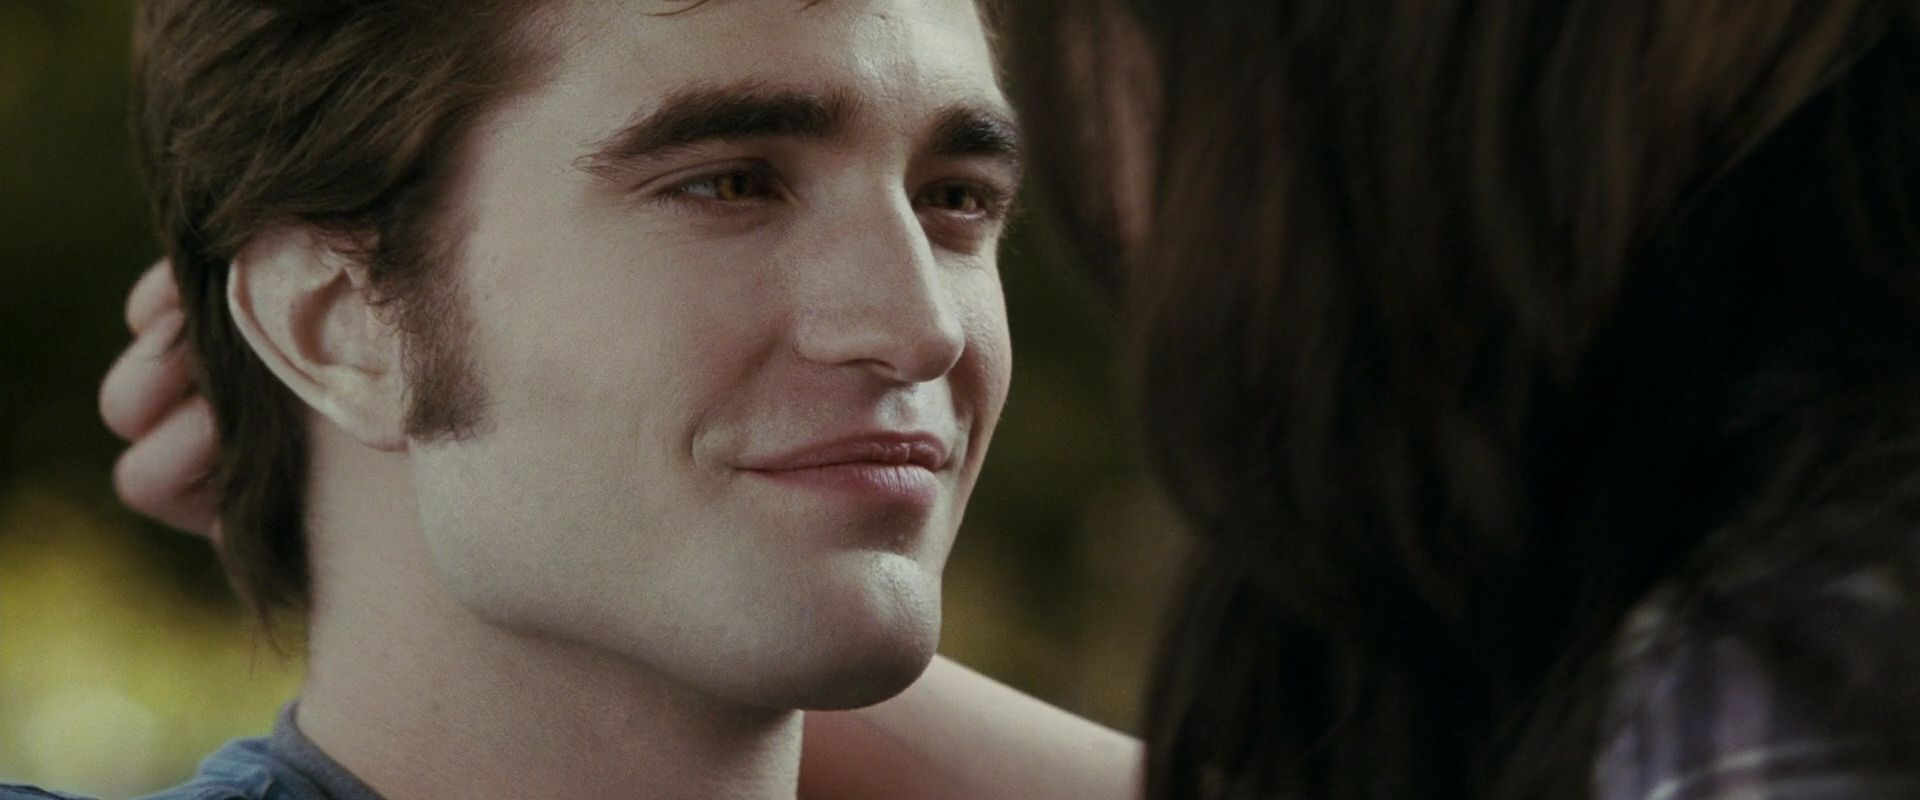 Eclipse {Bluray} - Robert Pattinson & Kristen Stewart ...